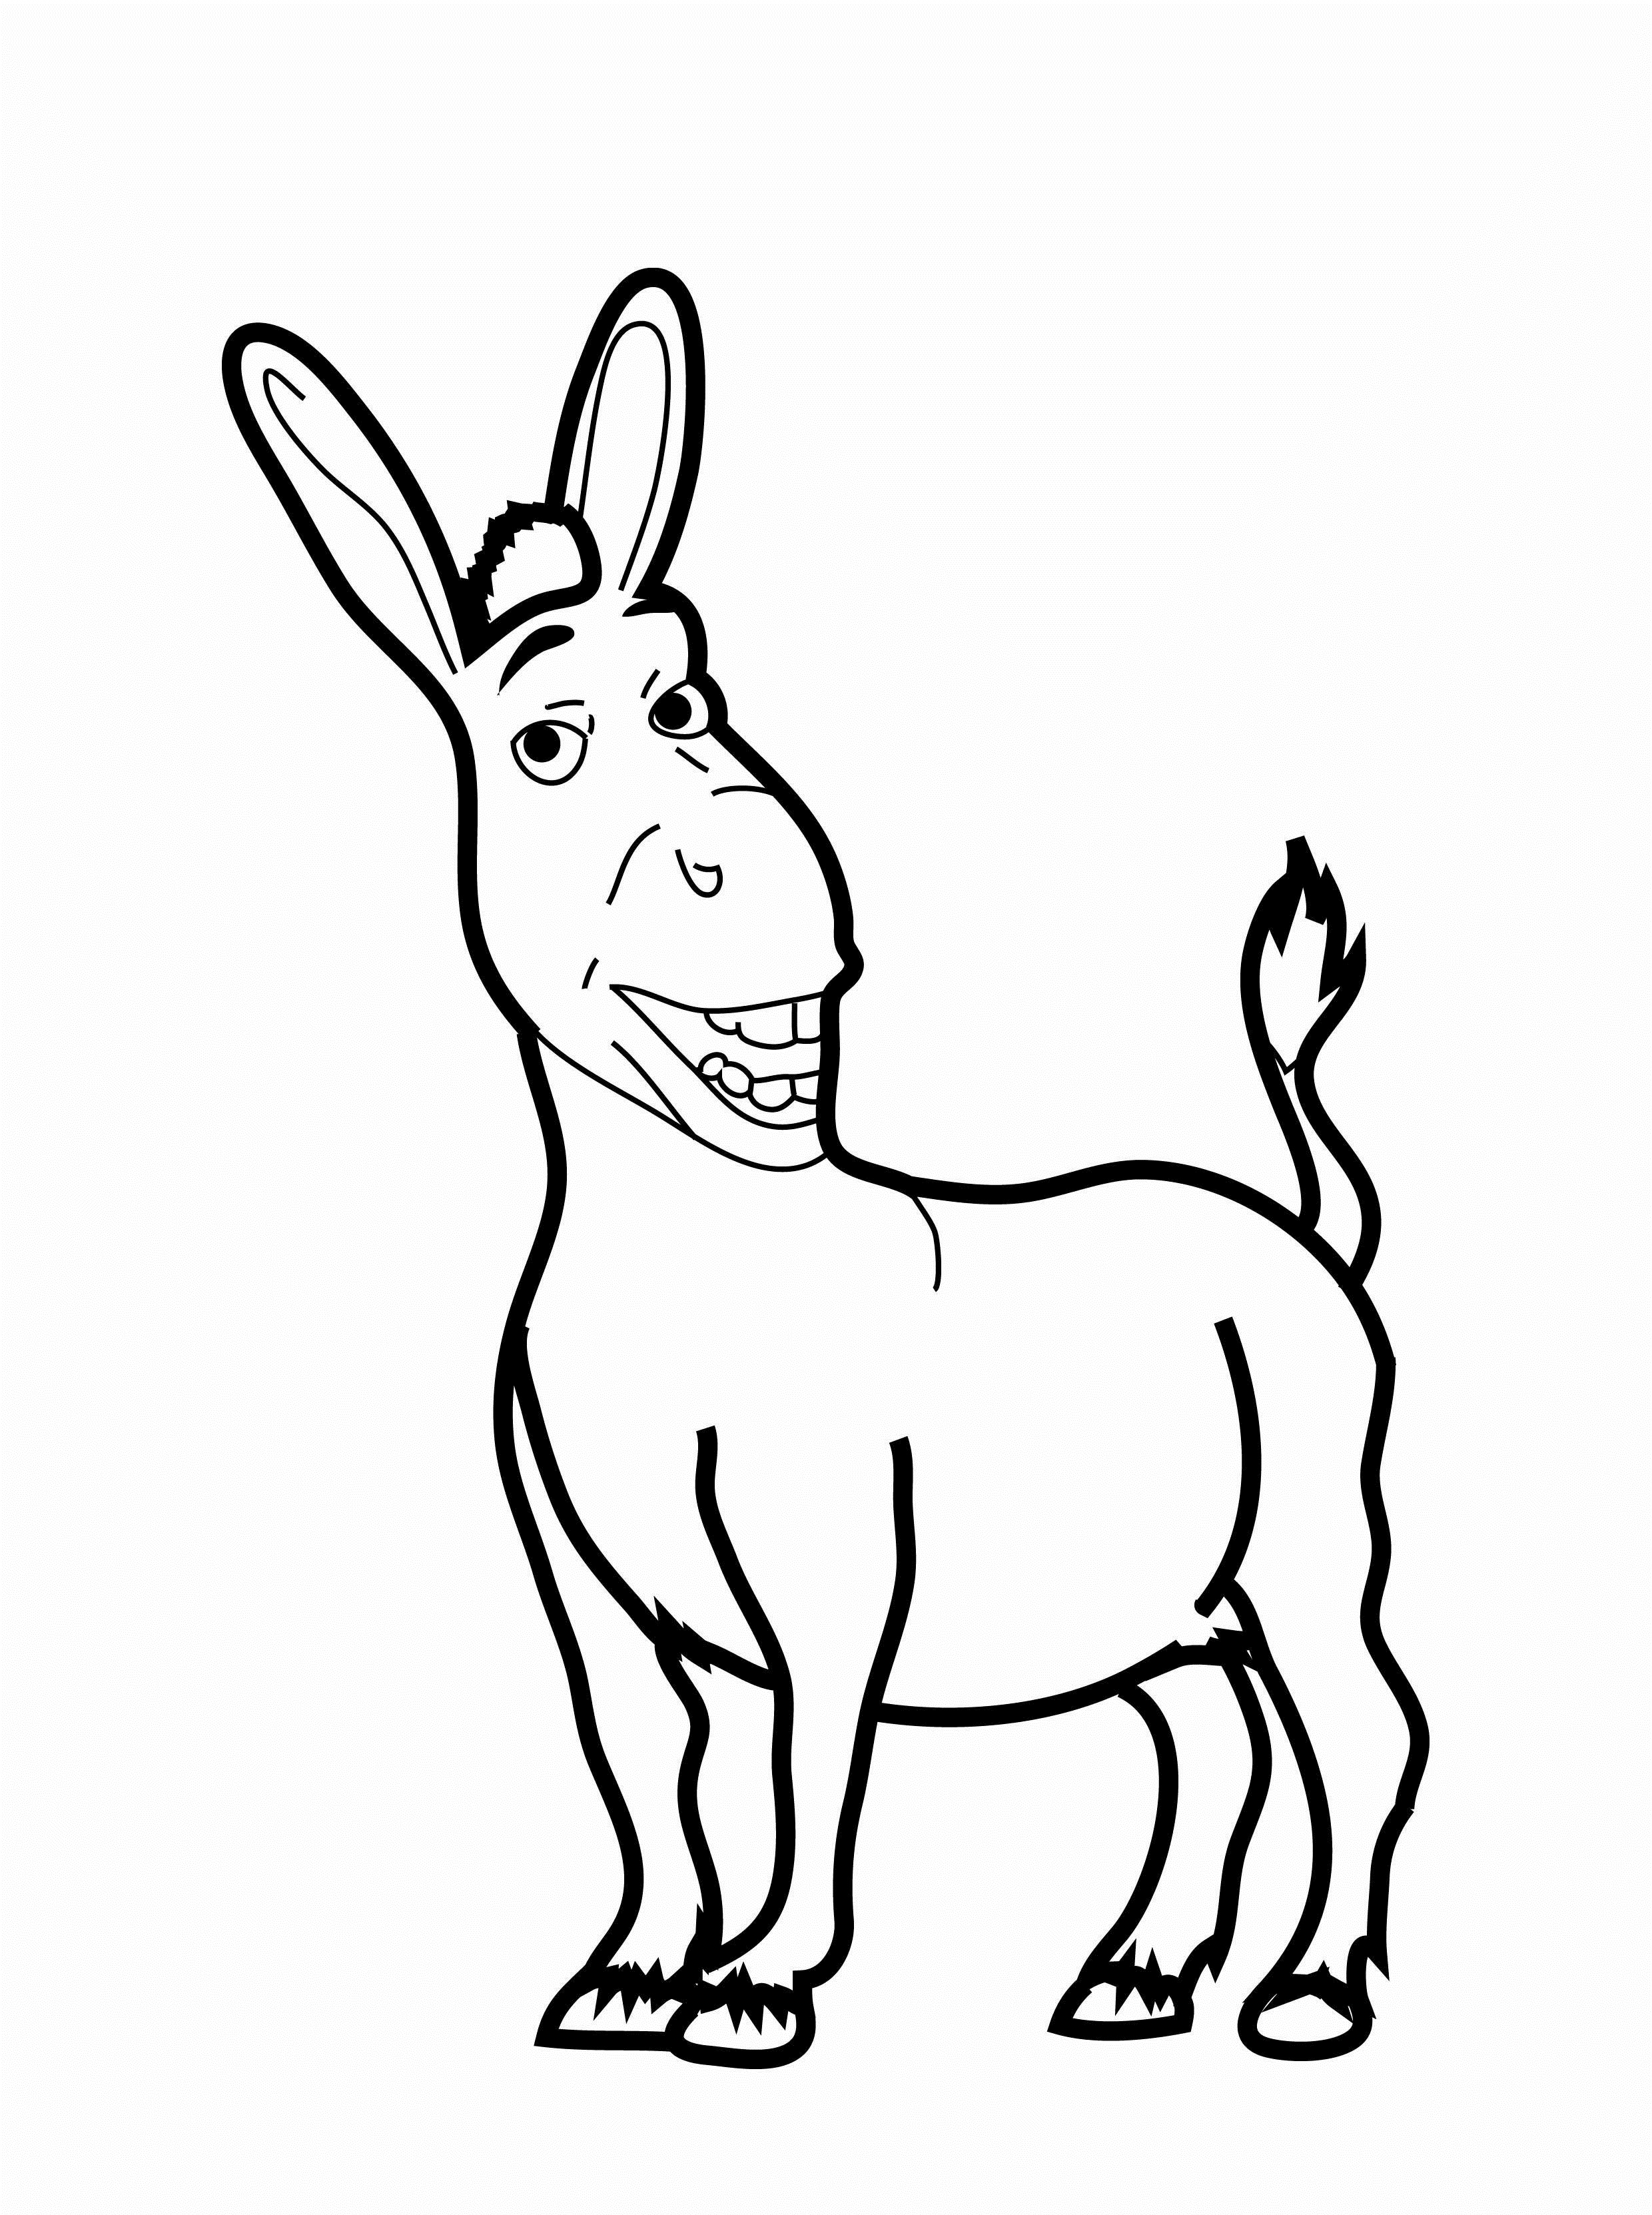 donkey colouring pages donkey coloring pages to download and print for free donkey pages colouring